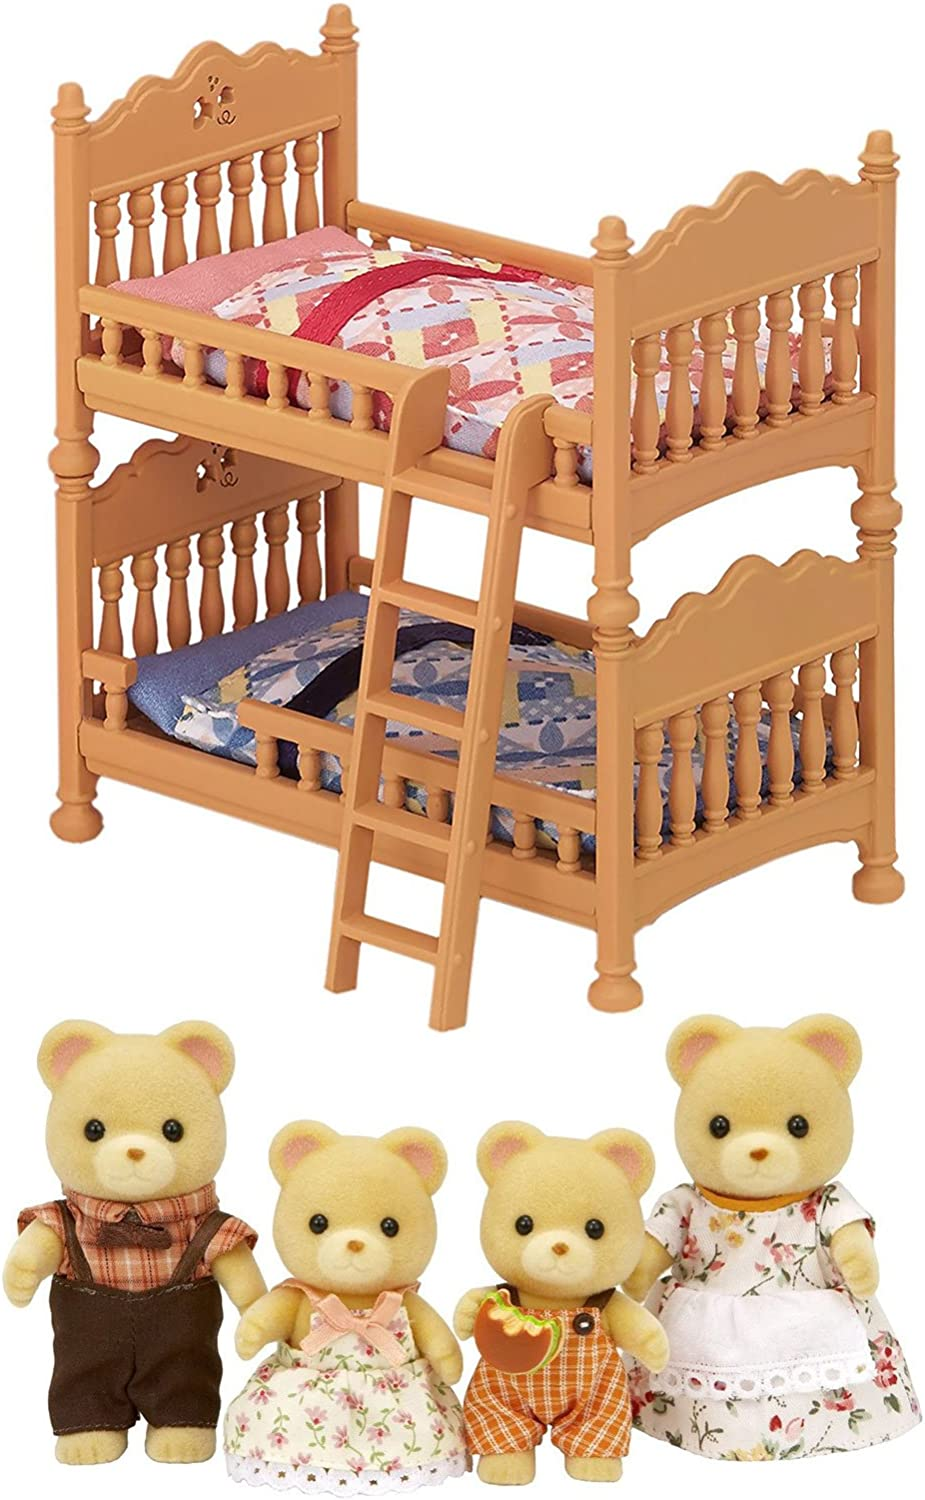 2 Calico Critters Sets  Bear Family and Double Bunk Bed Sold Together (Japan Import)